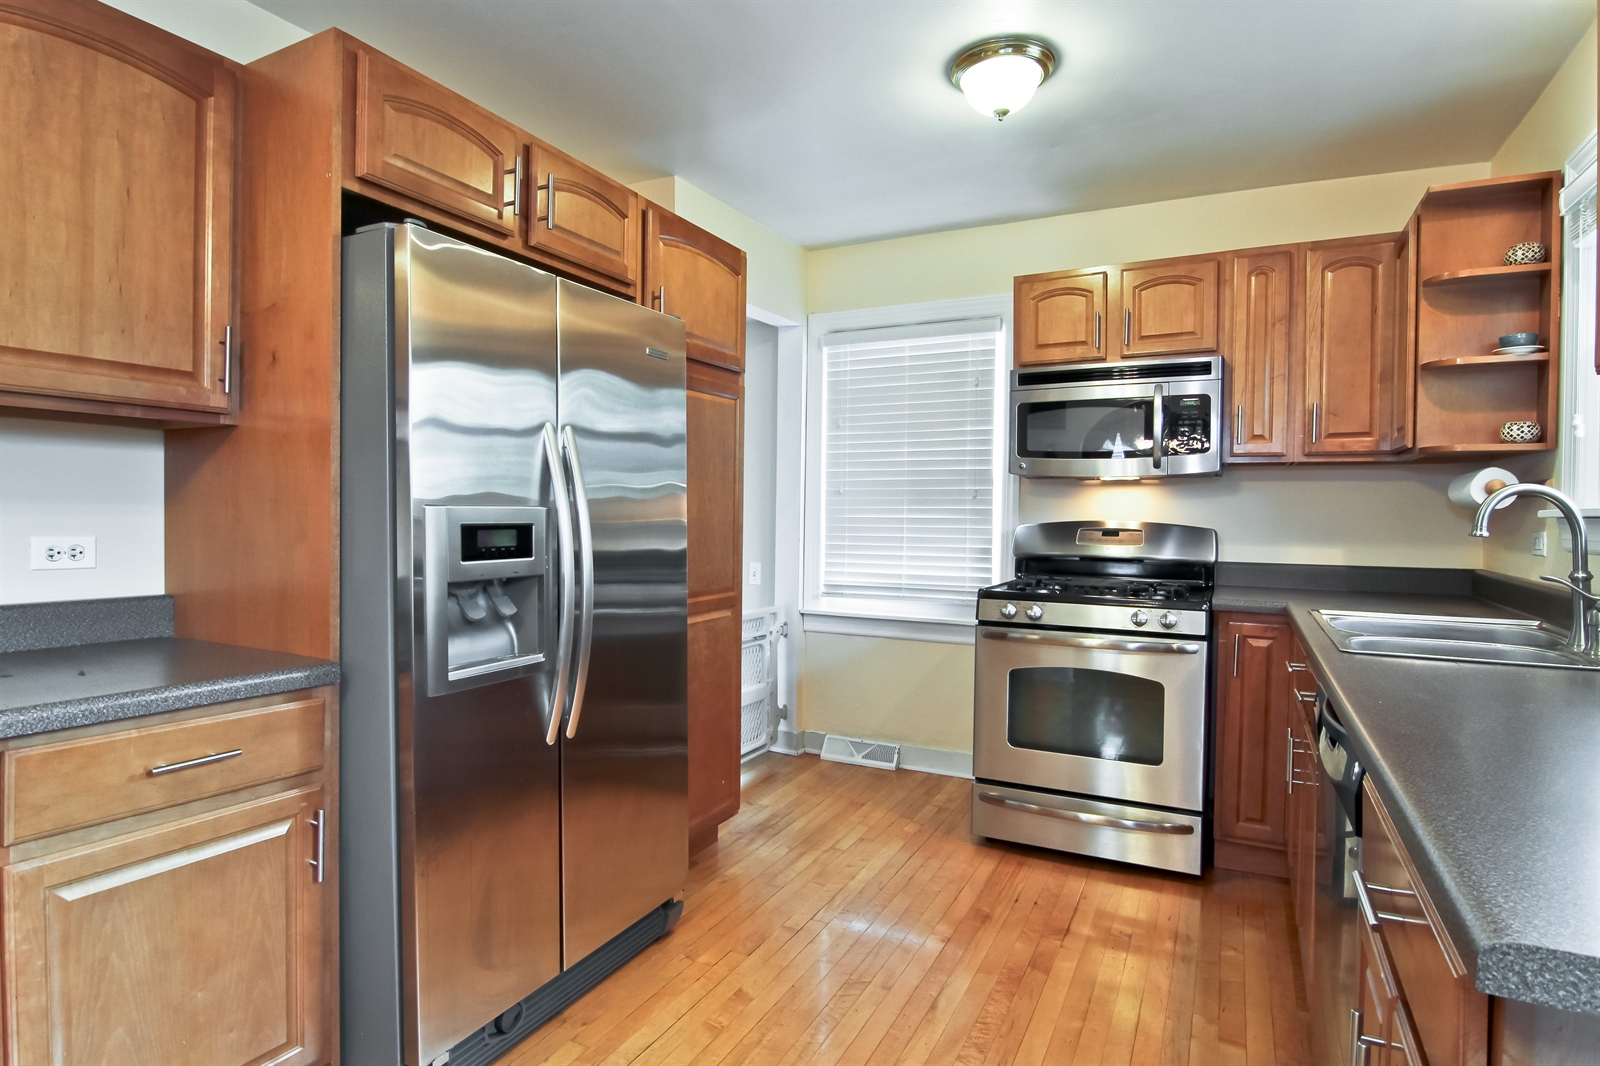 Real Estate Photography - 4244 N Lindley St, Downers Grove, IL, 60515 - Kitchen 1